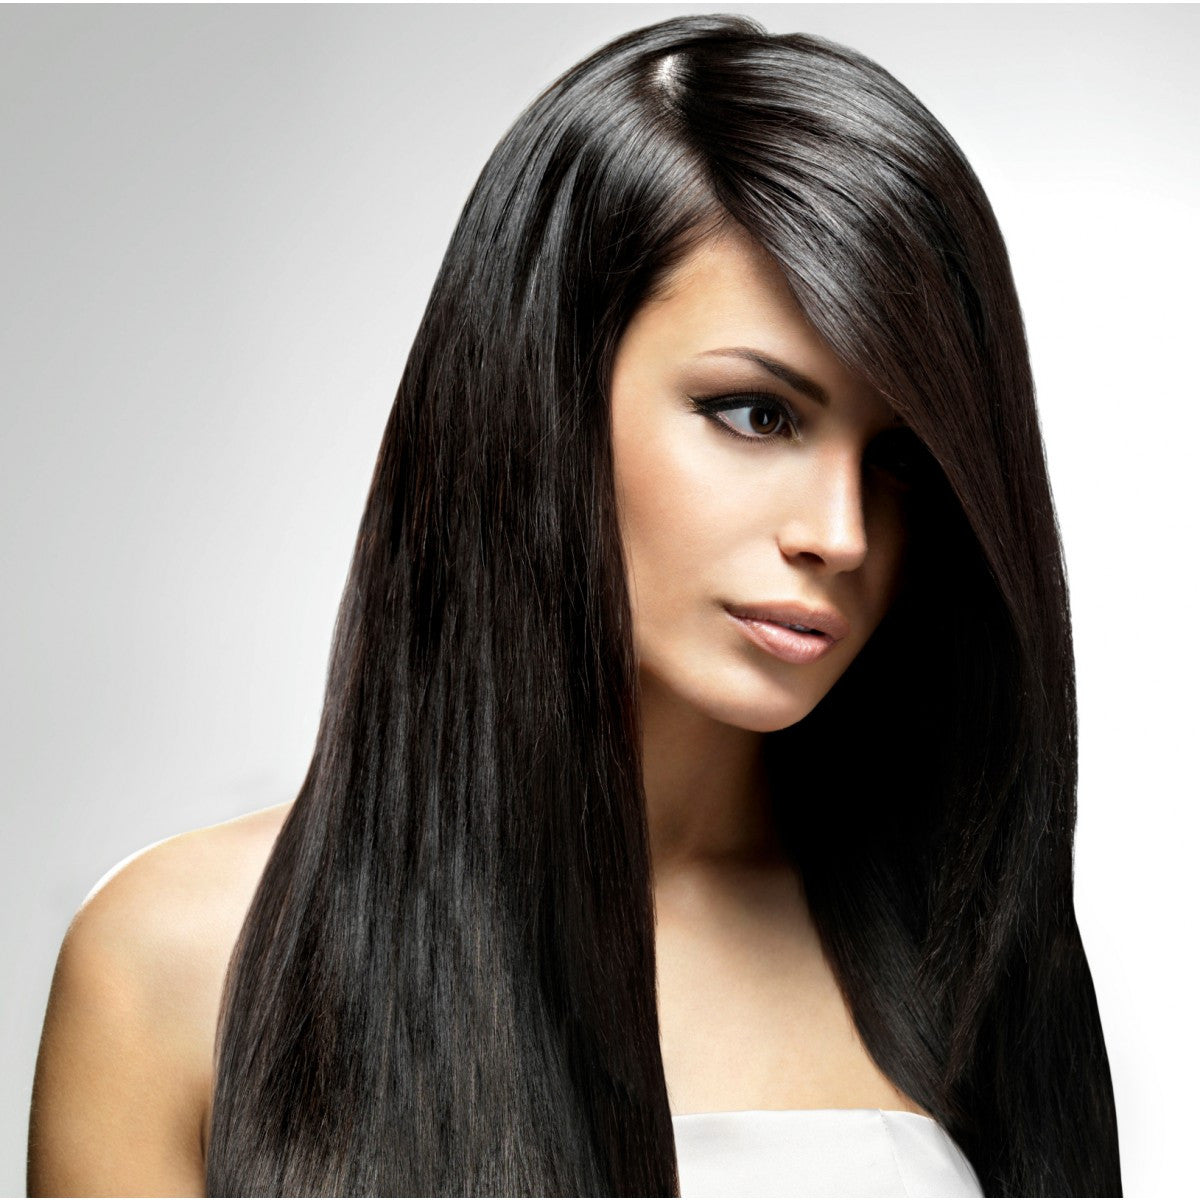 Keratin Relaxed Hair Products